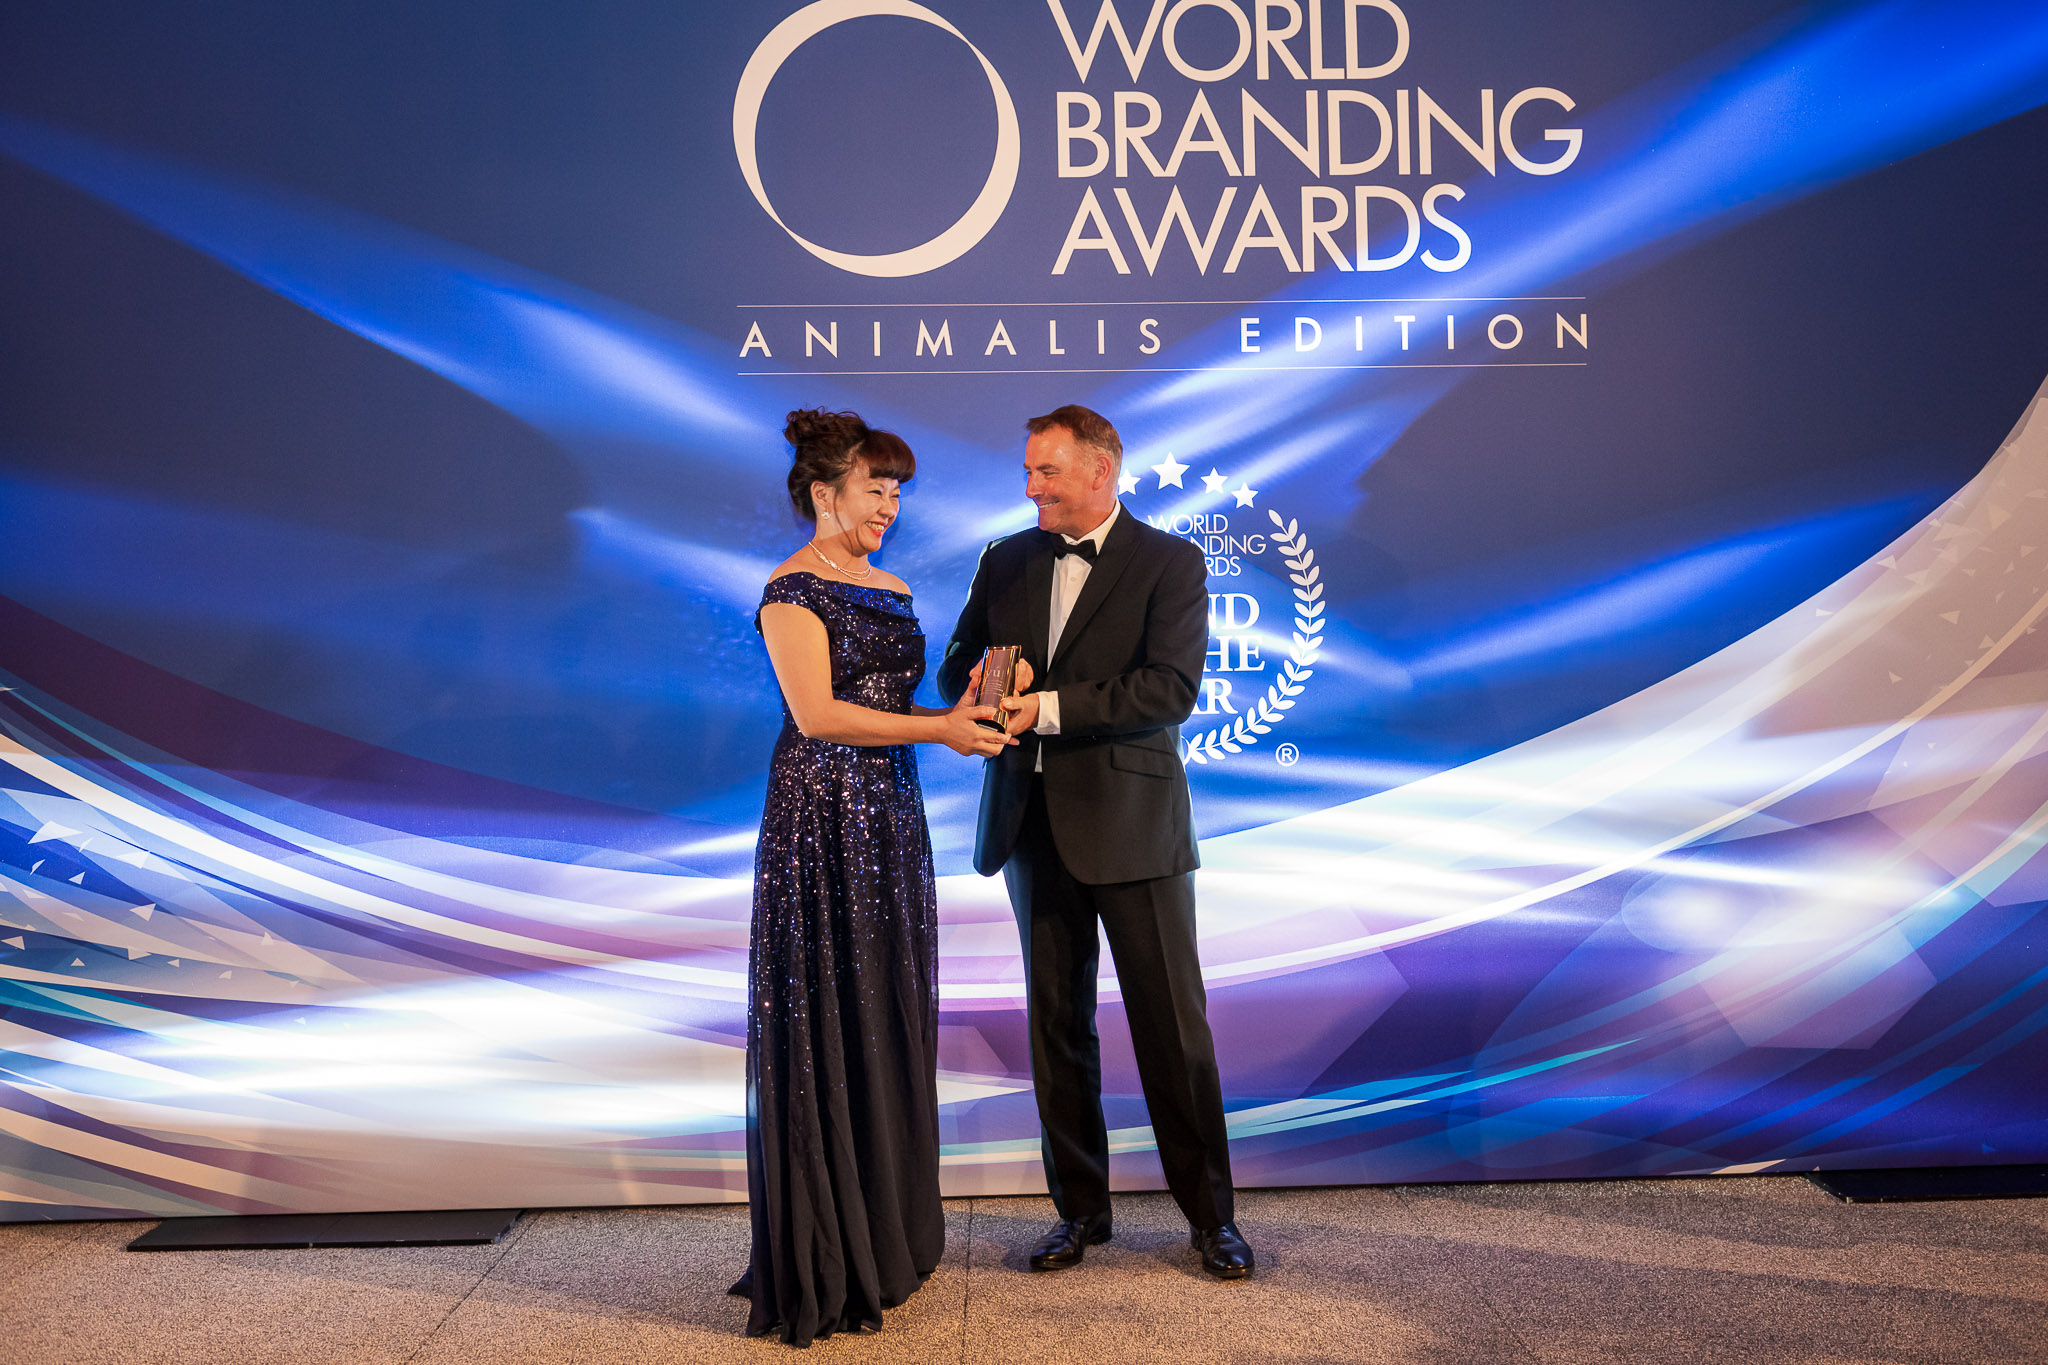 20190703_224147_world_branding_awards_animalis_7979